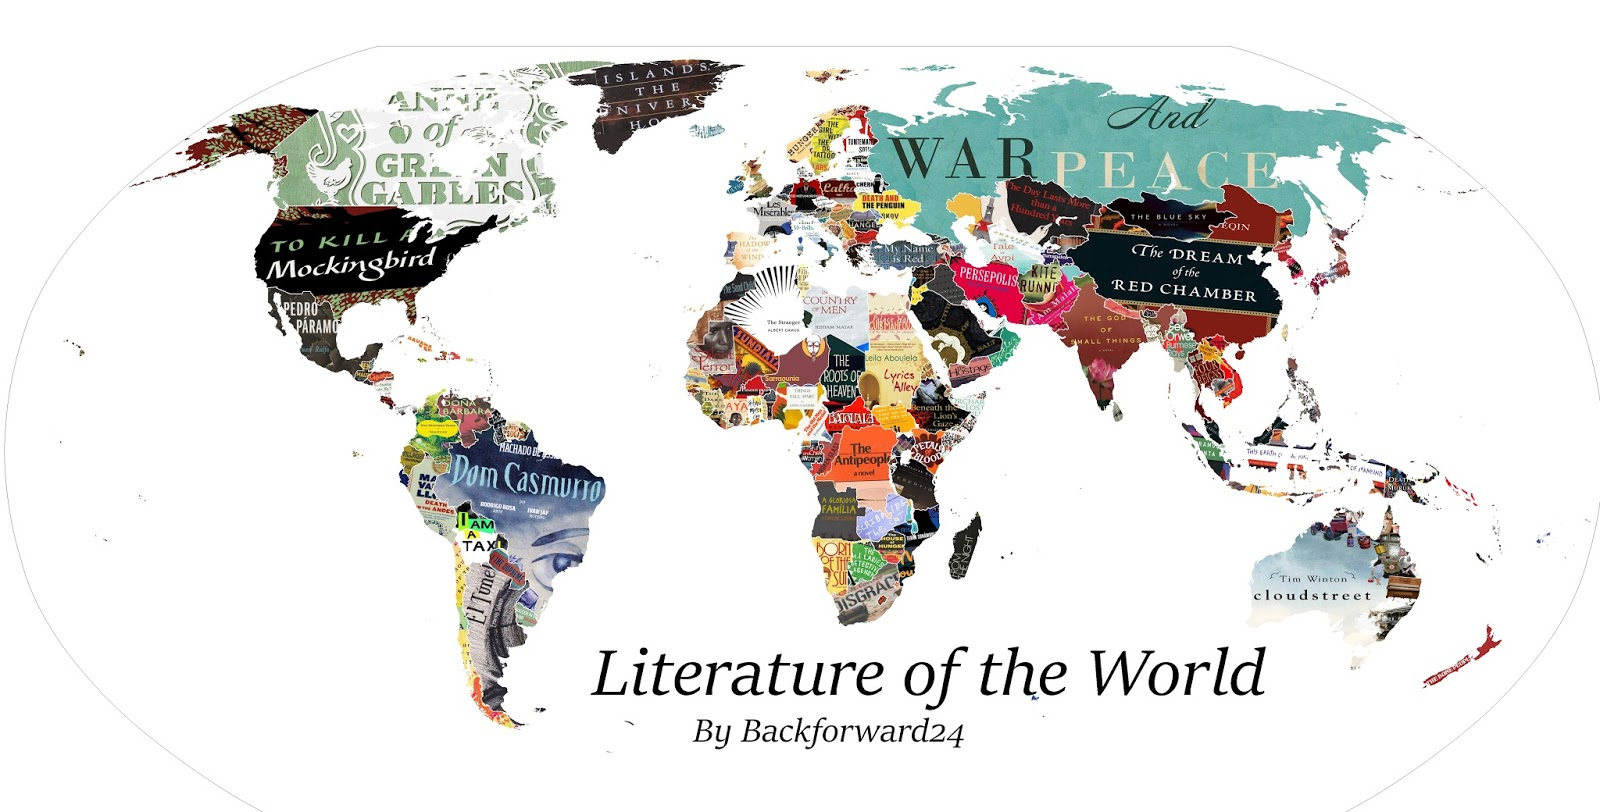 Around the world in 80 books literature of the world map by literature of the world map by backforward24 gumiabroncs Images